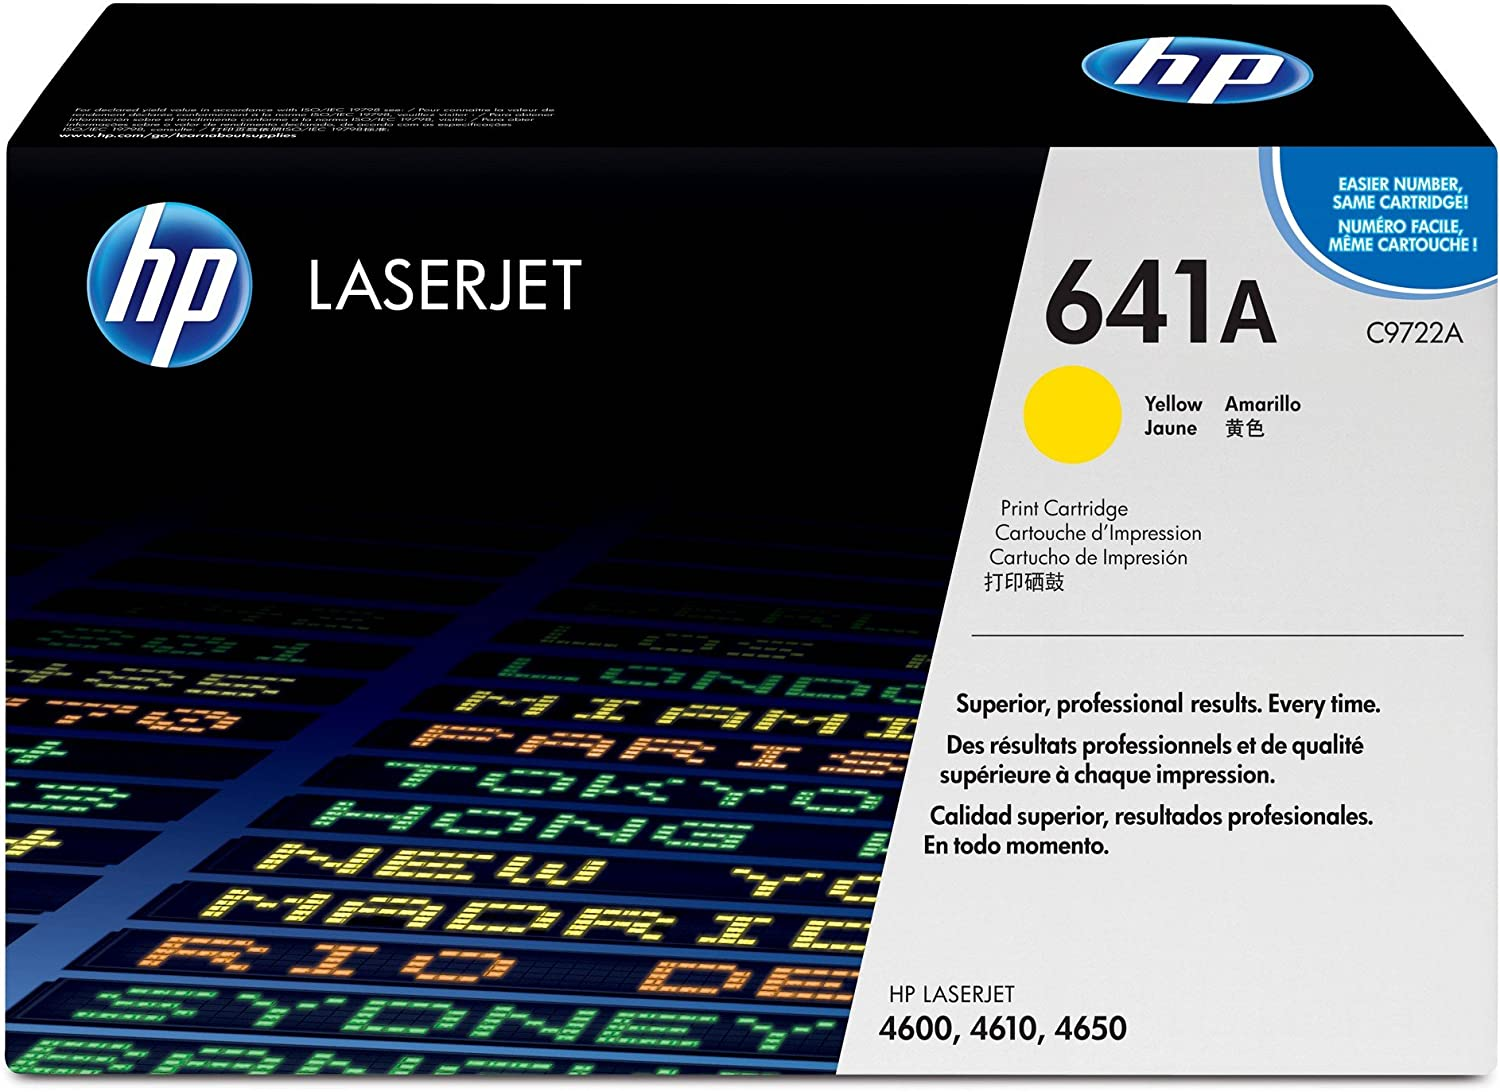 HP 641A | C9722A | Toner Cartridge | Yellow